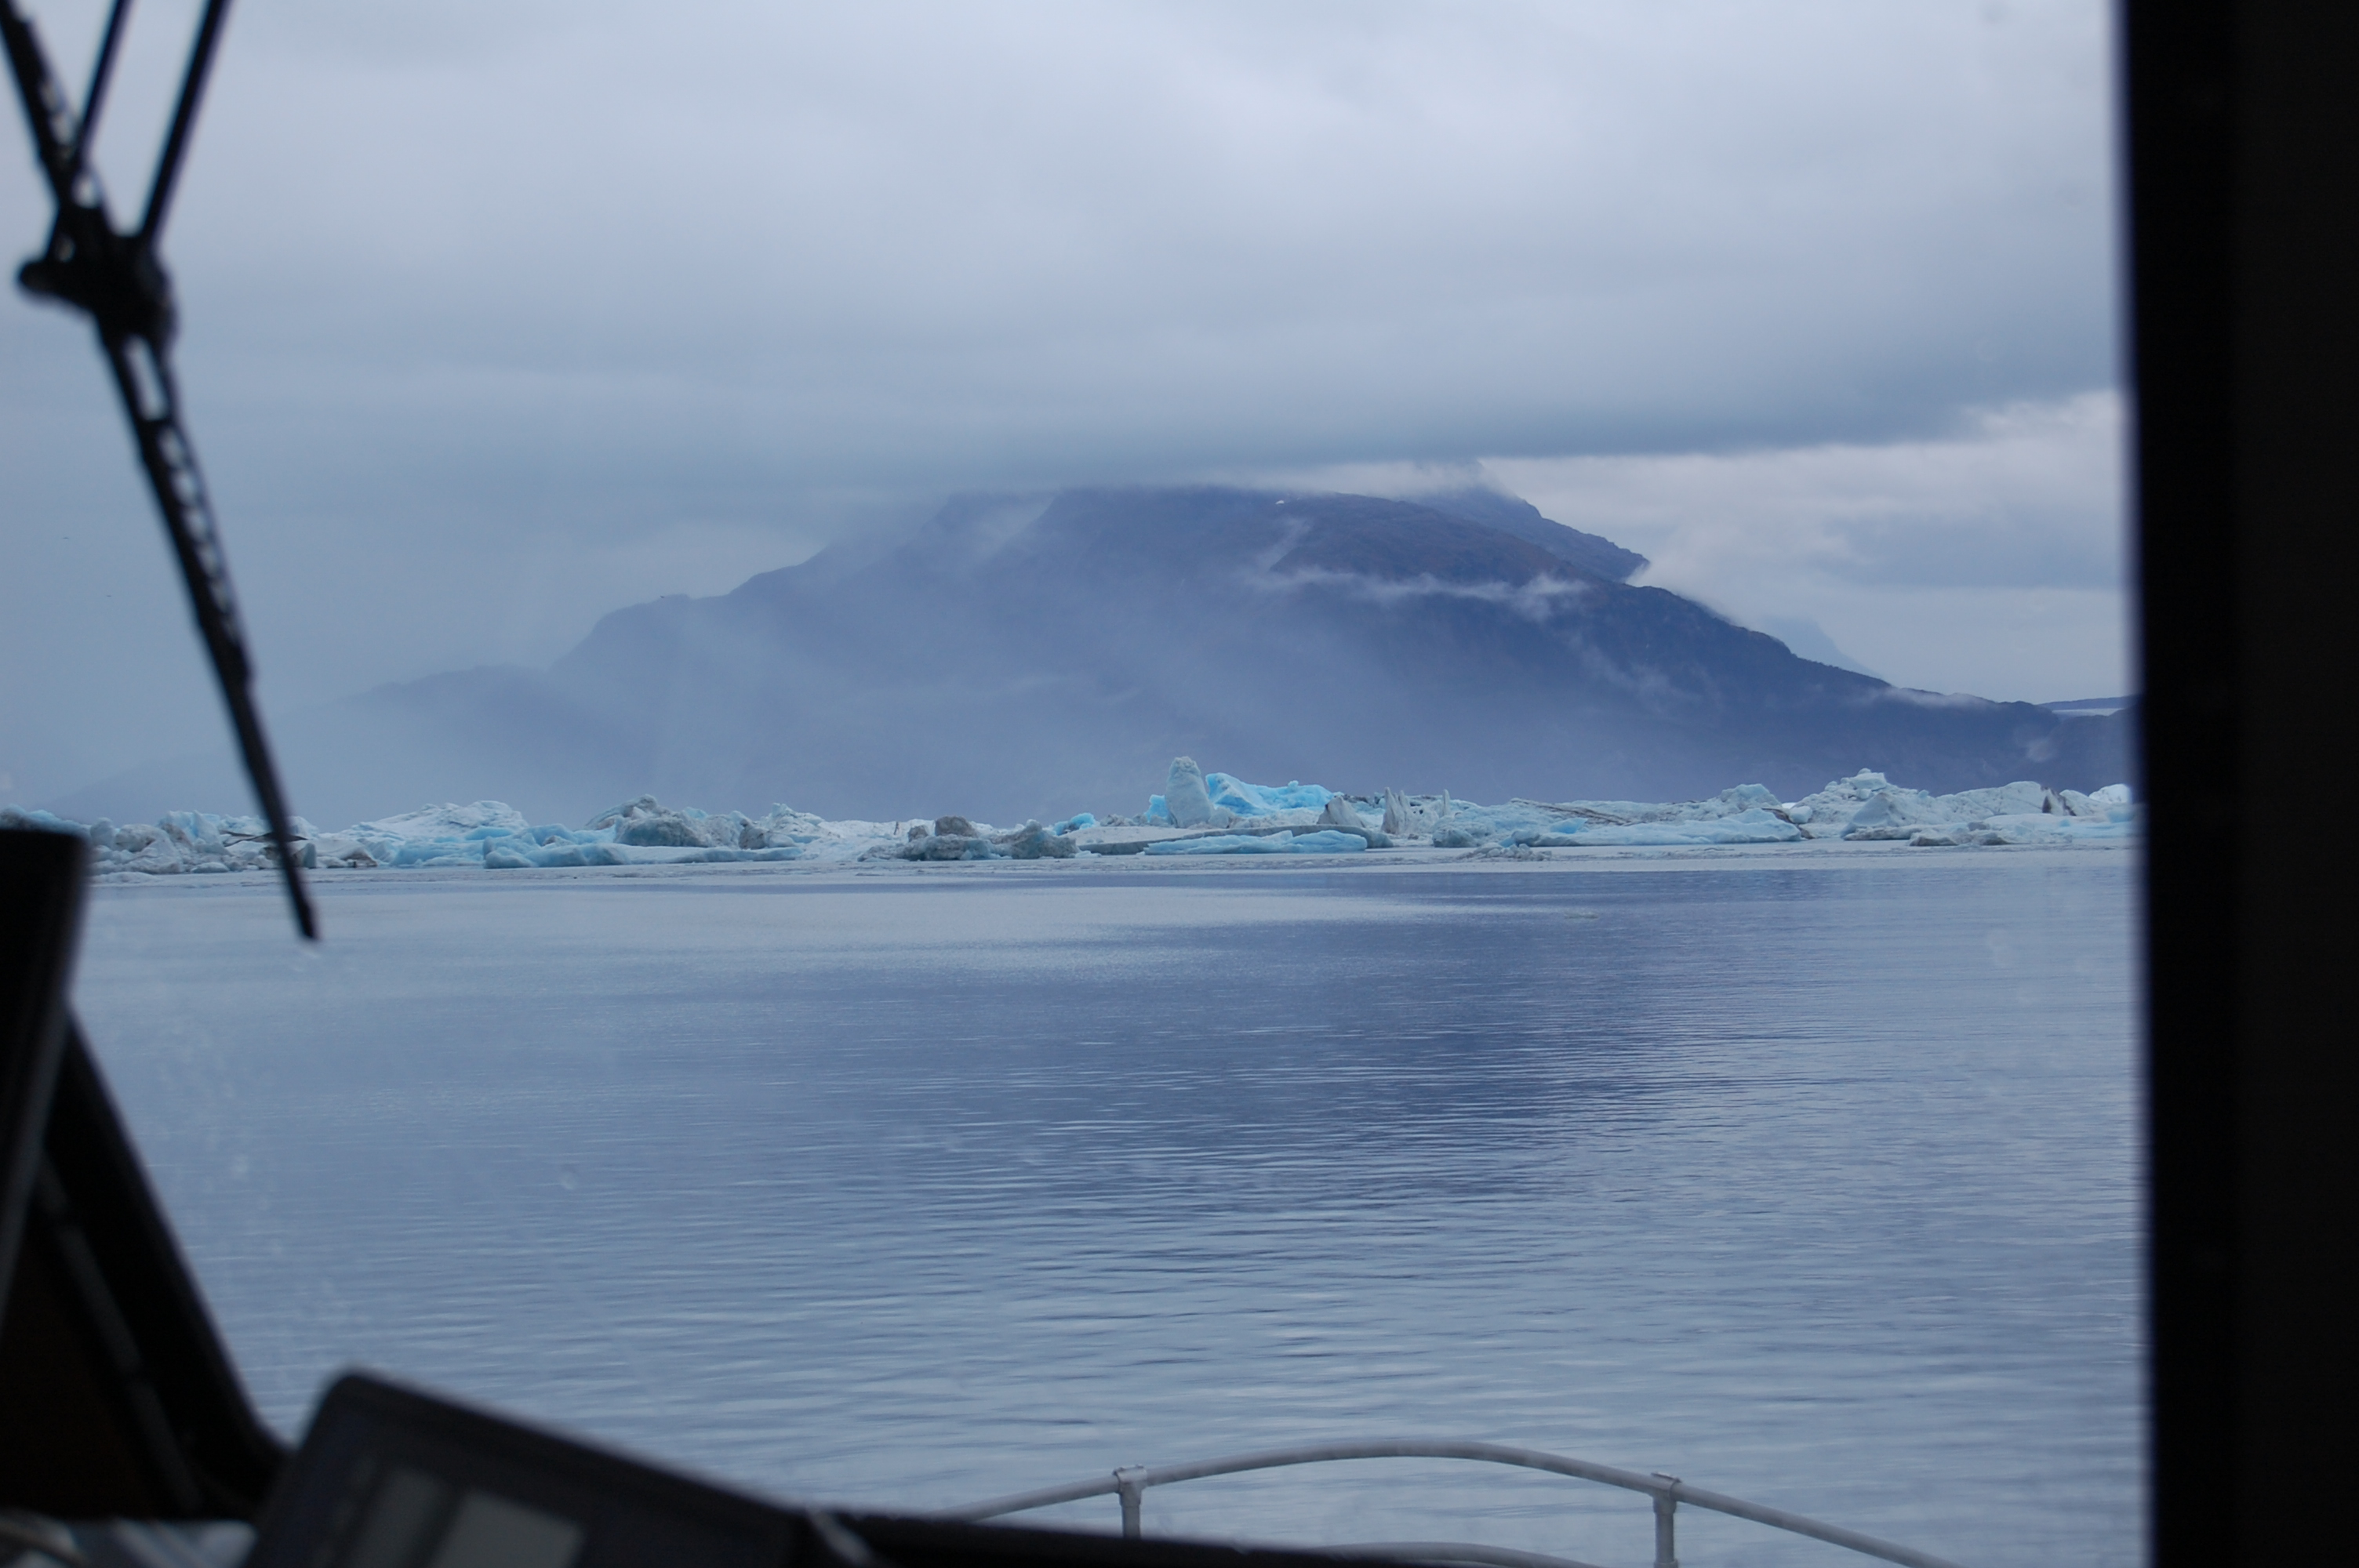 One of the best views was from right behind the captain of the boat.